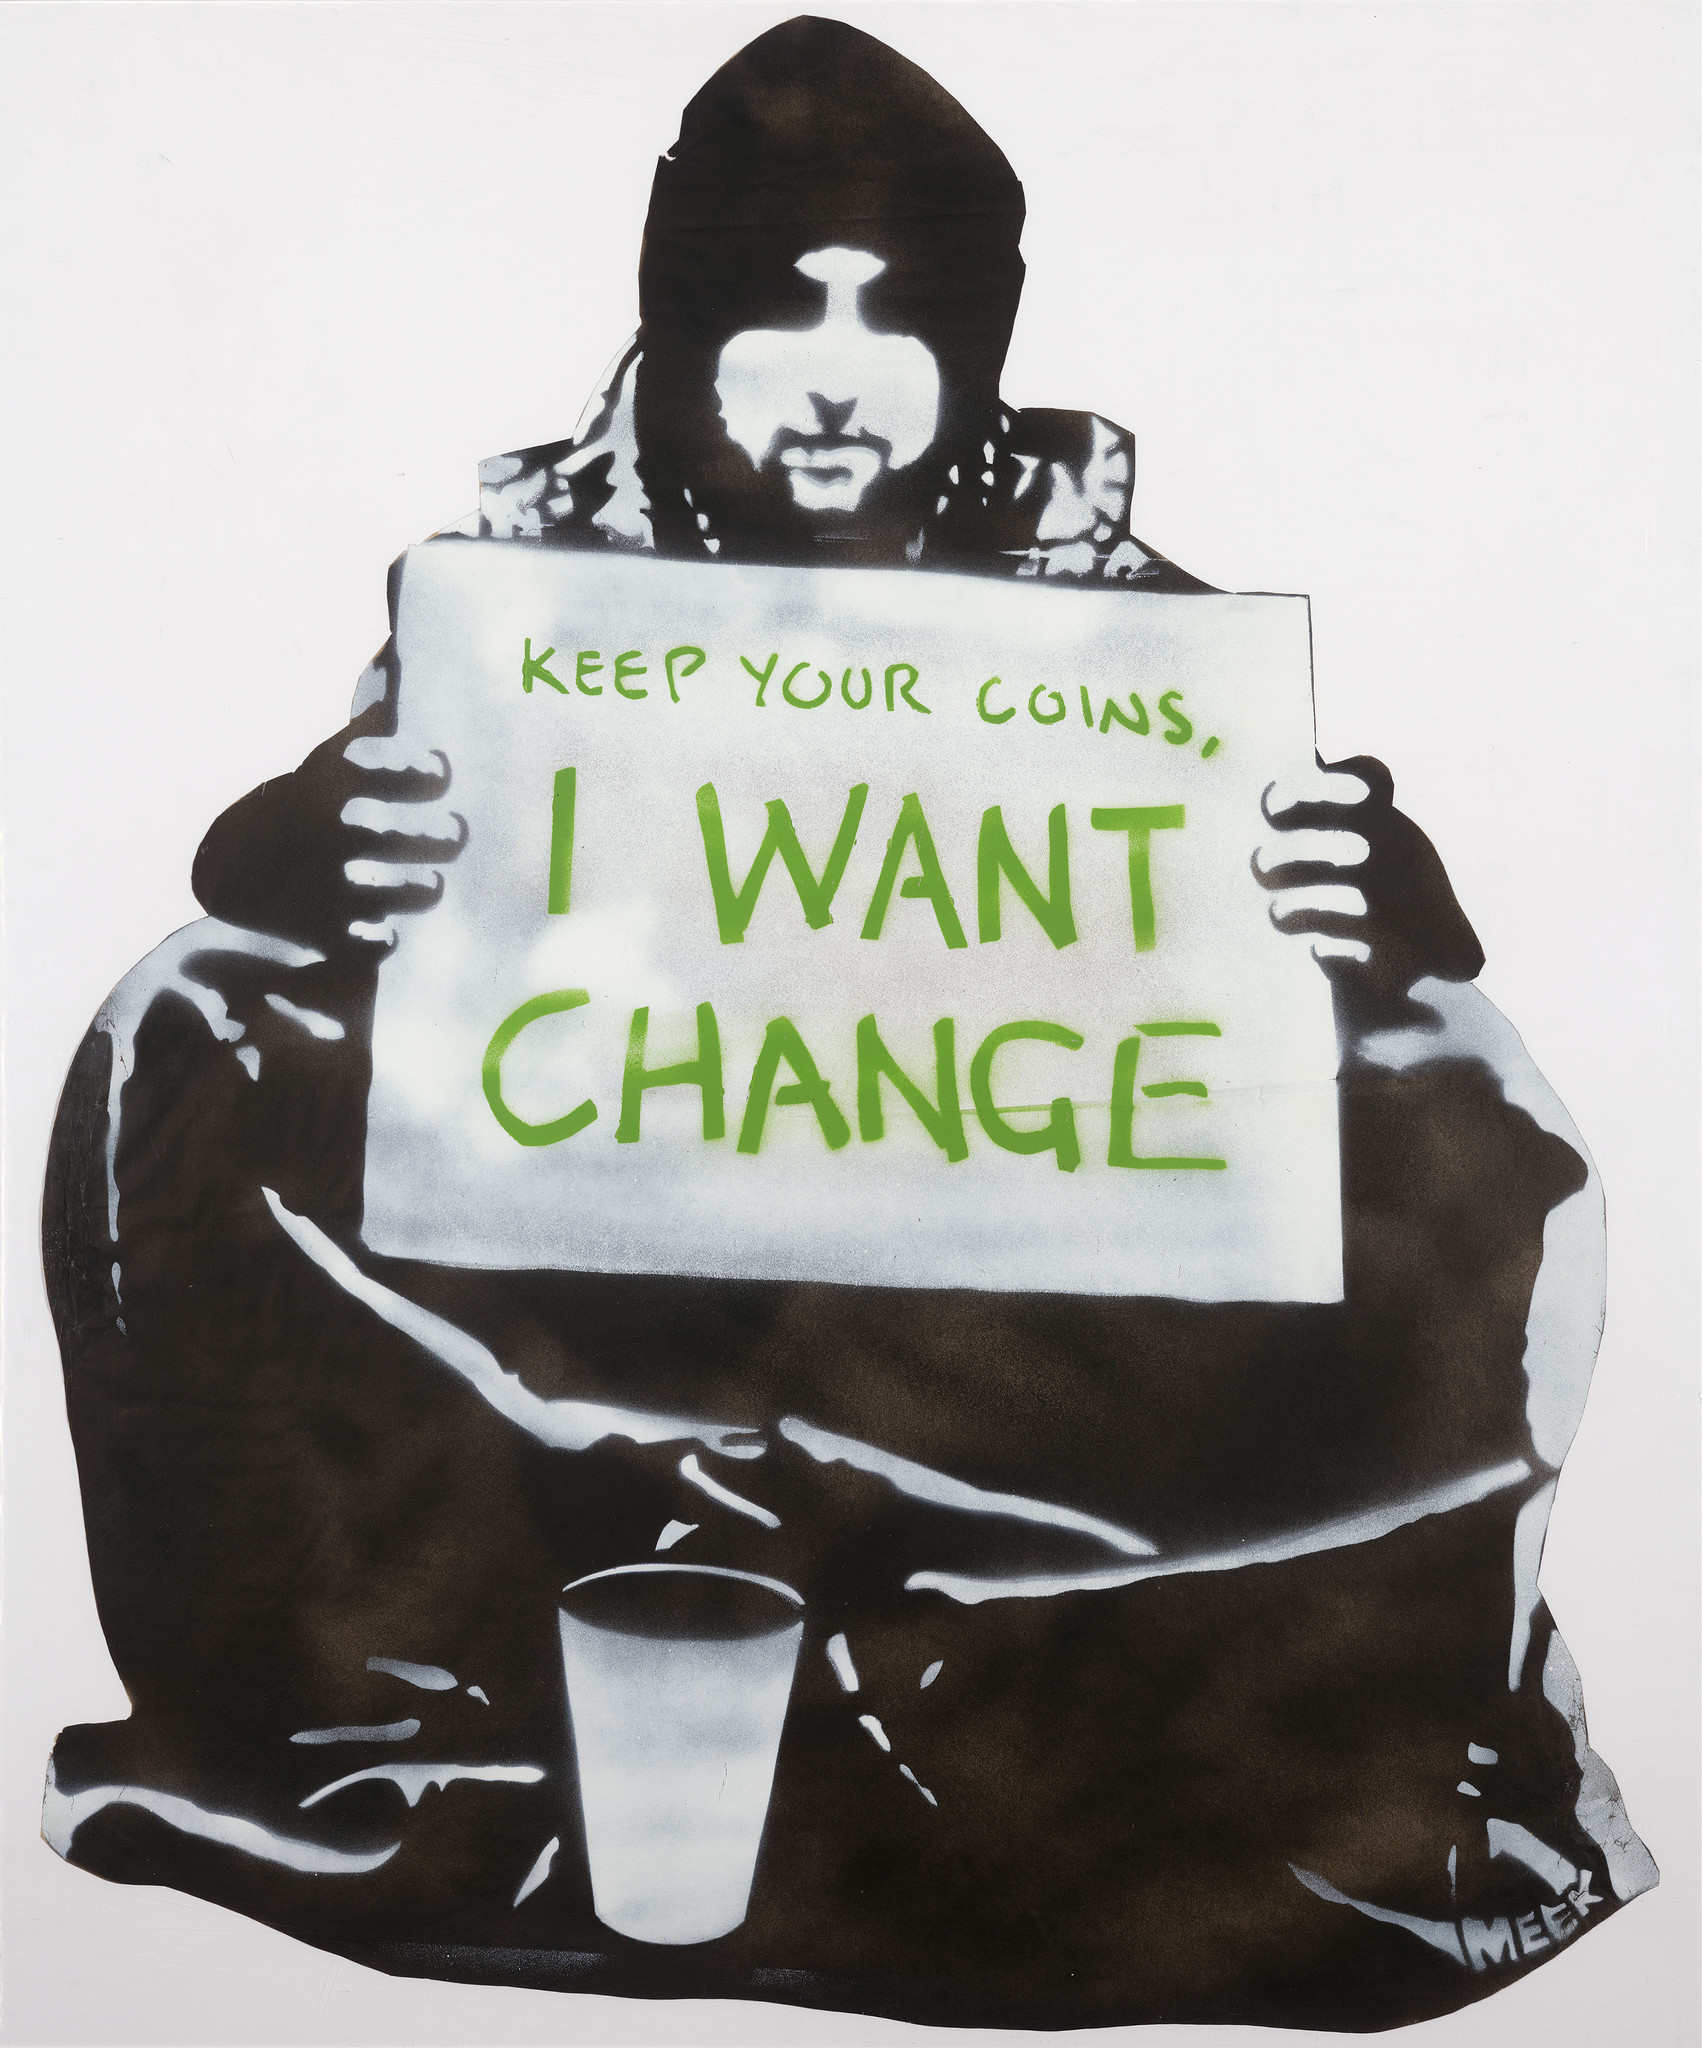 """Begging for Change,"" Meek, stencil, 2004, Melbourne, Australia."